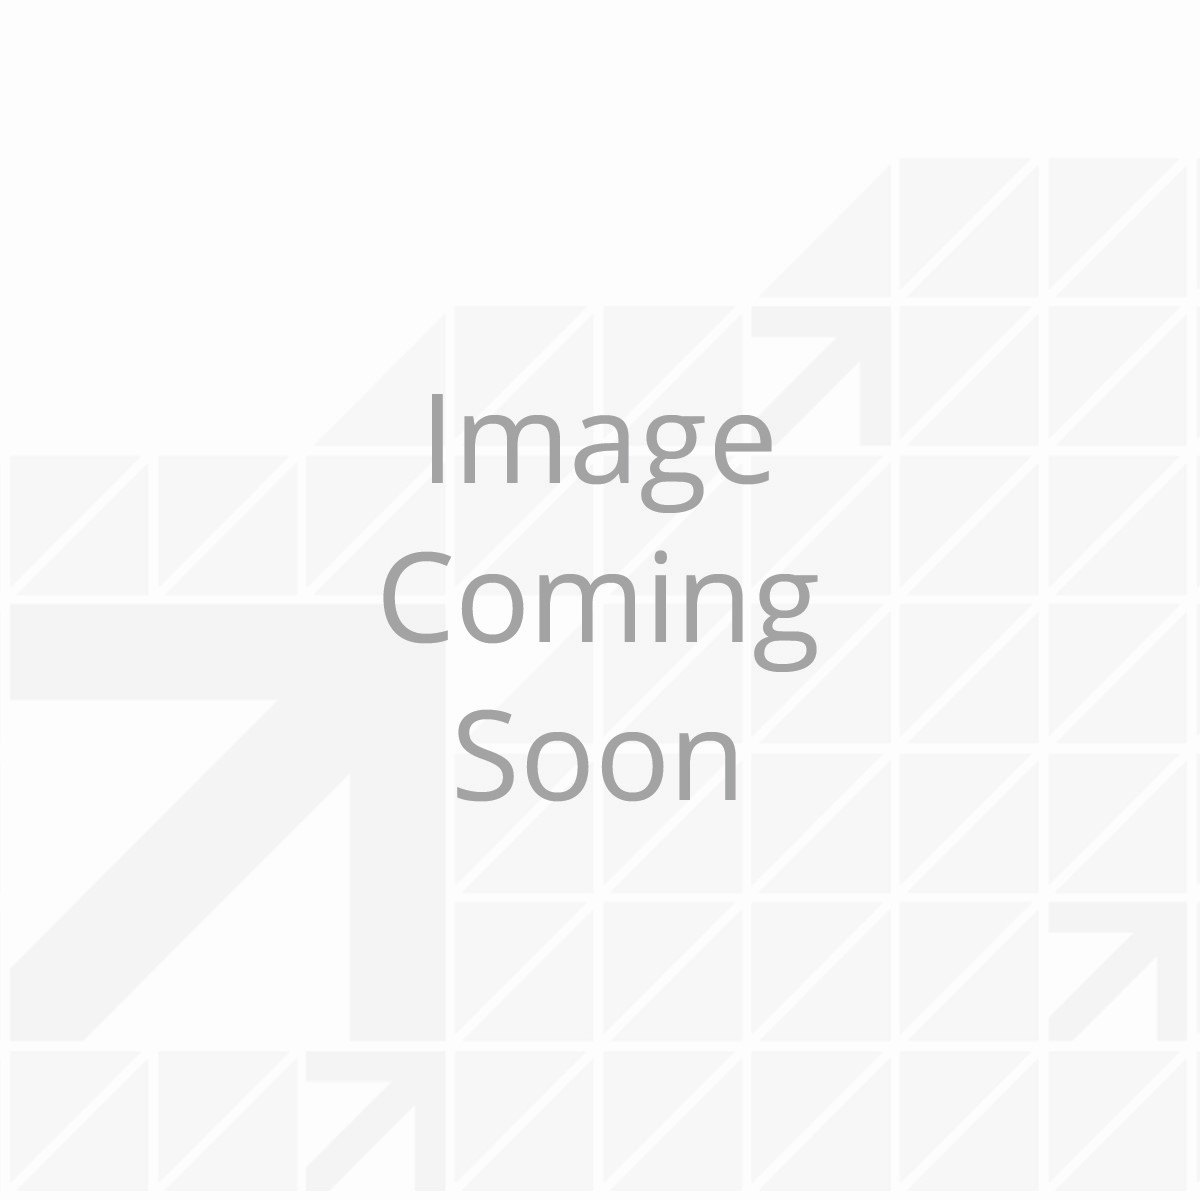 Waterproof Extend/Retract Switch Assembly for Power Tongue Jack